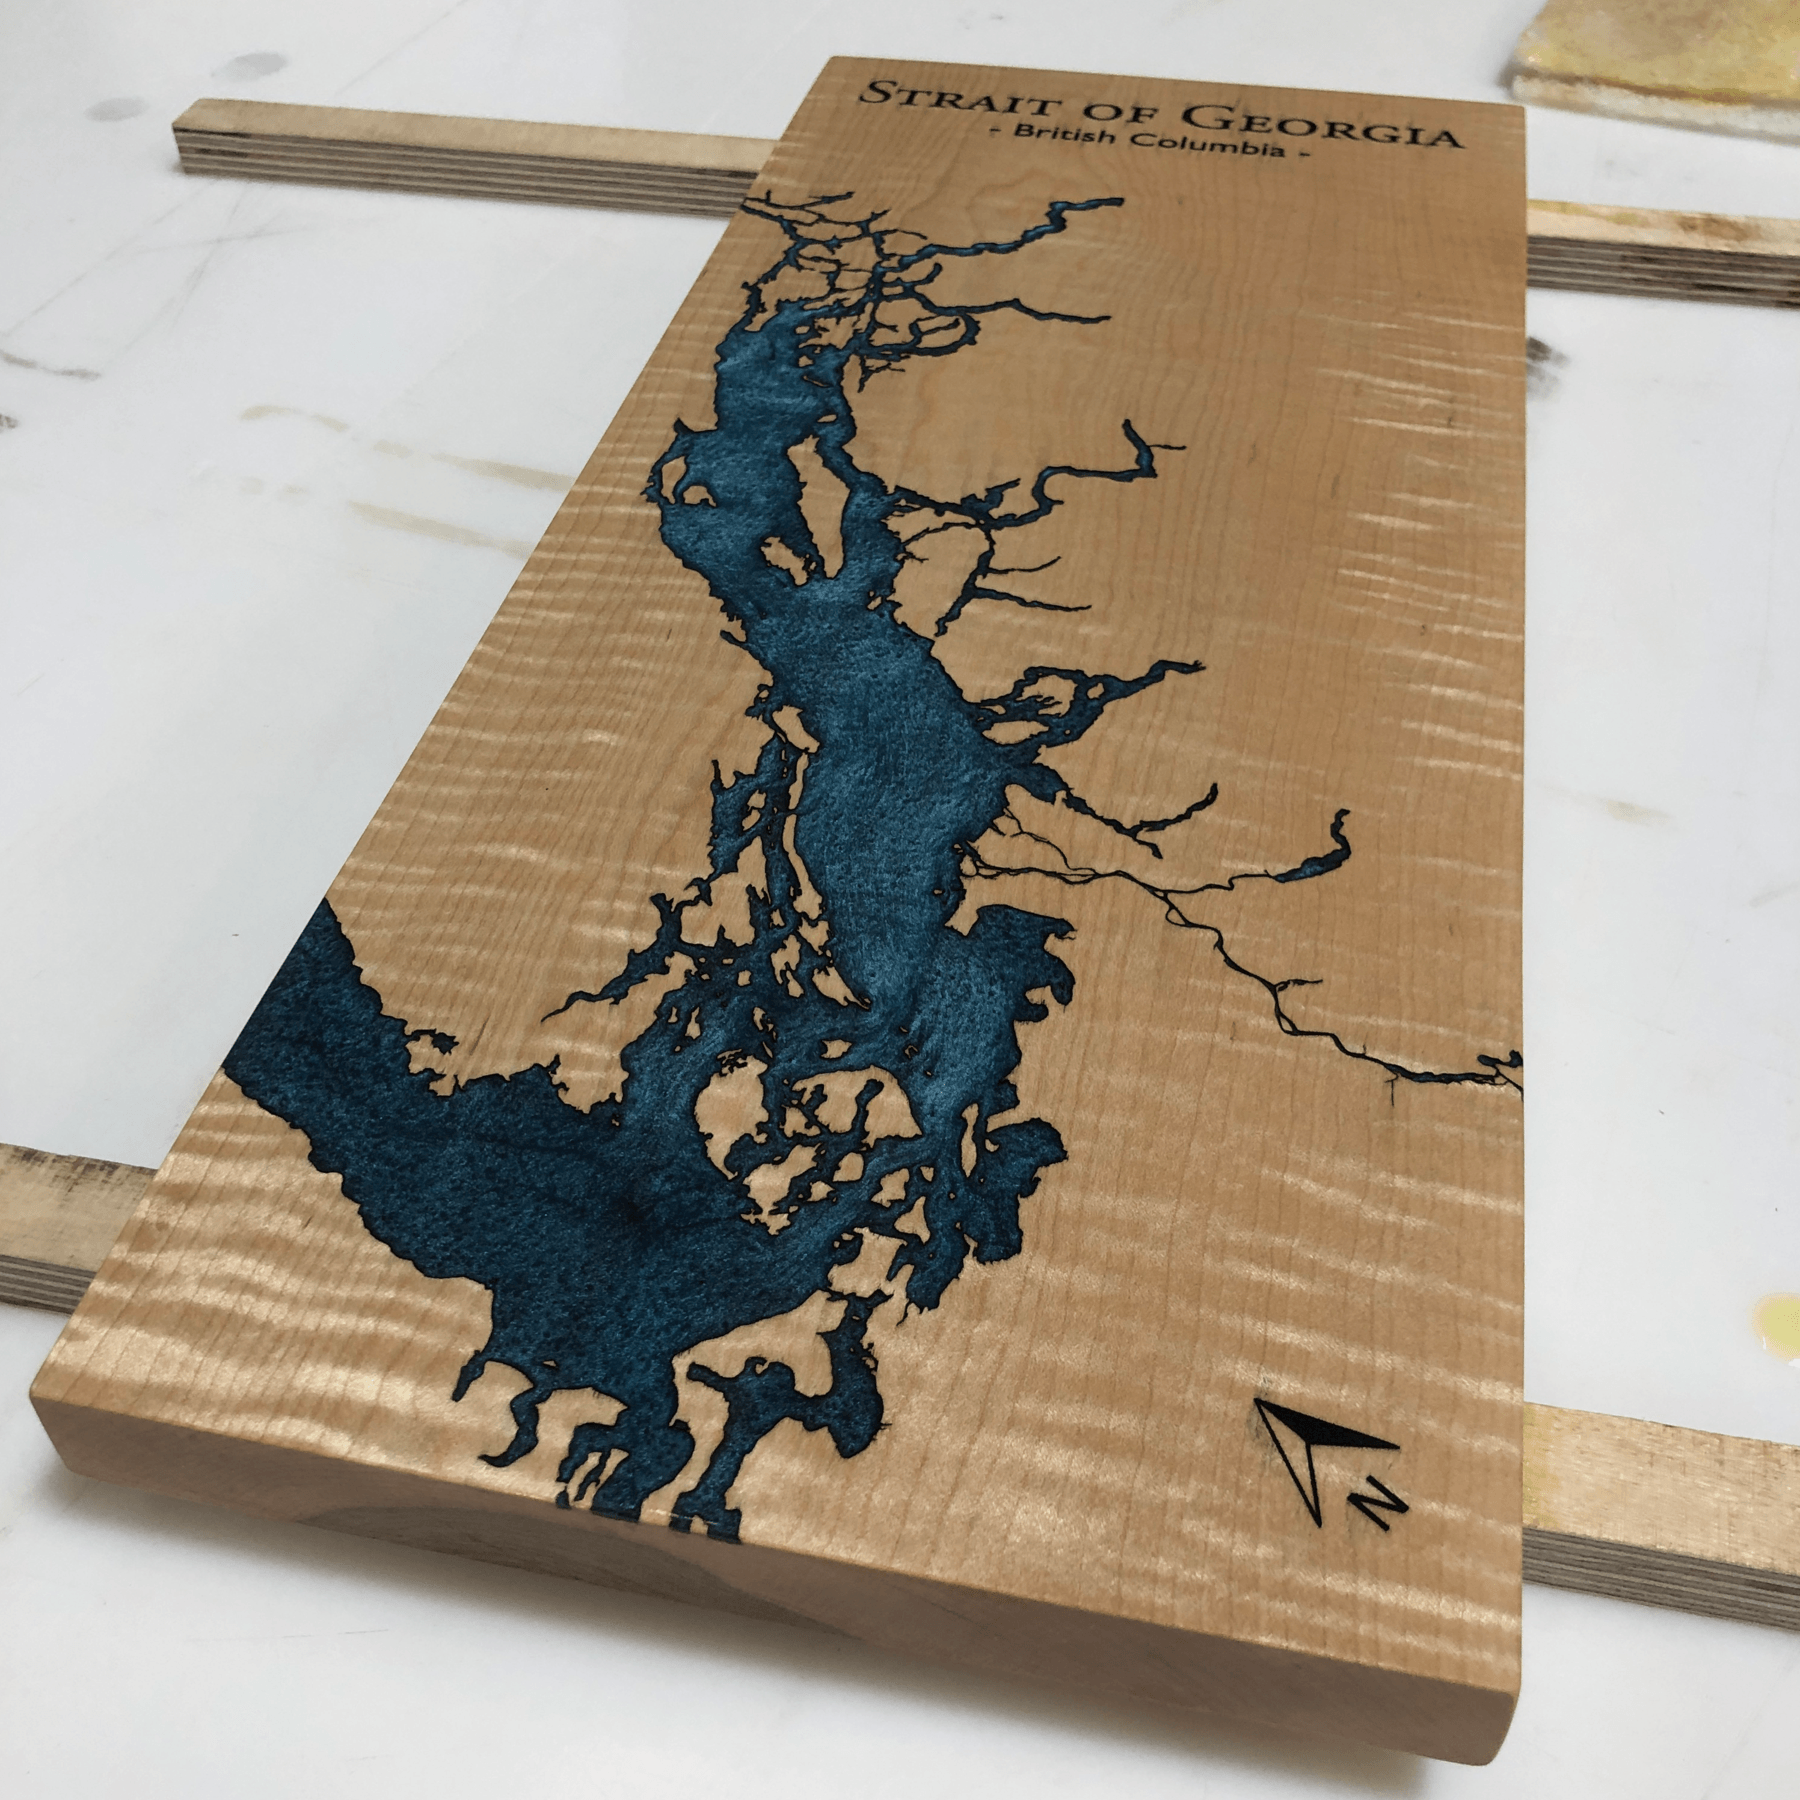 Custom Designed Straight of Georgia Maple and Blue Epoxy Lake Board by Keyway Designs